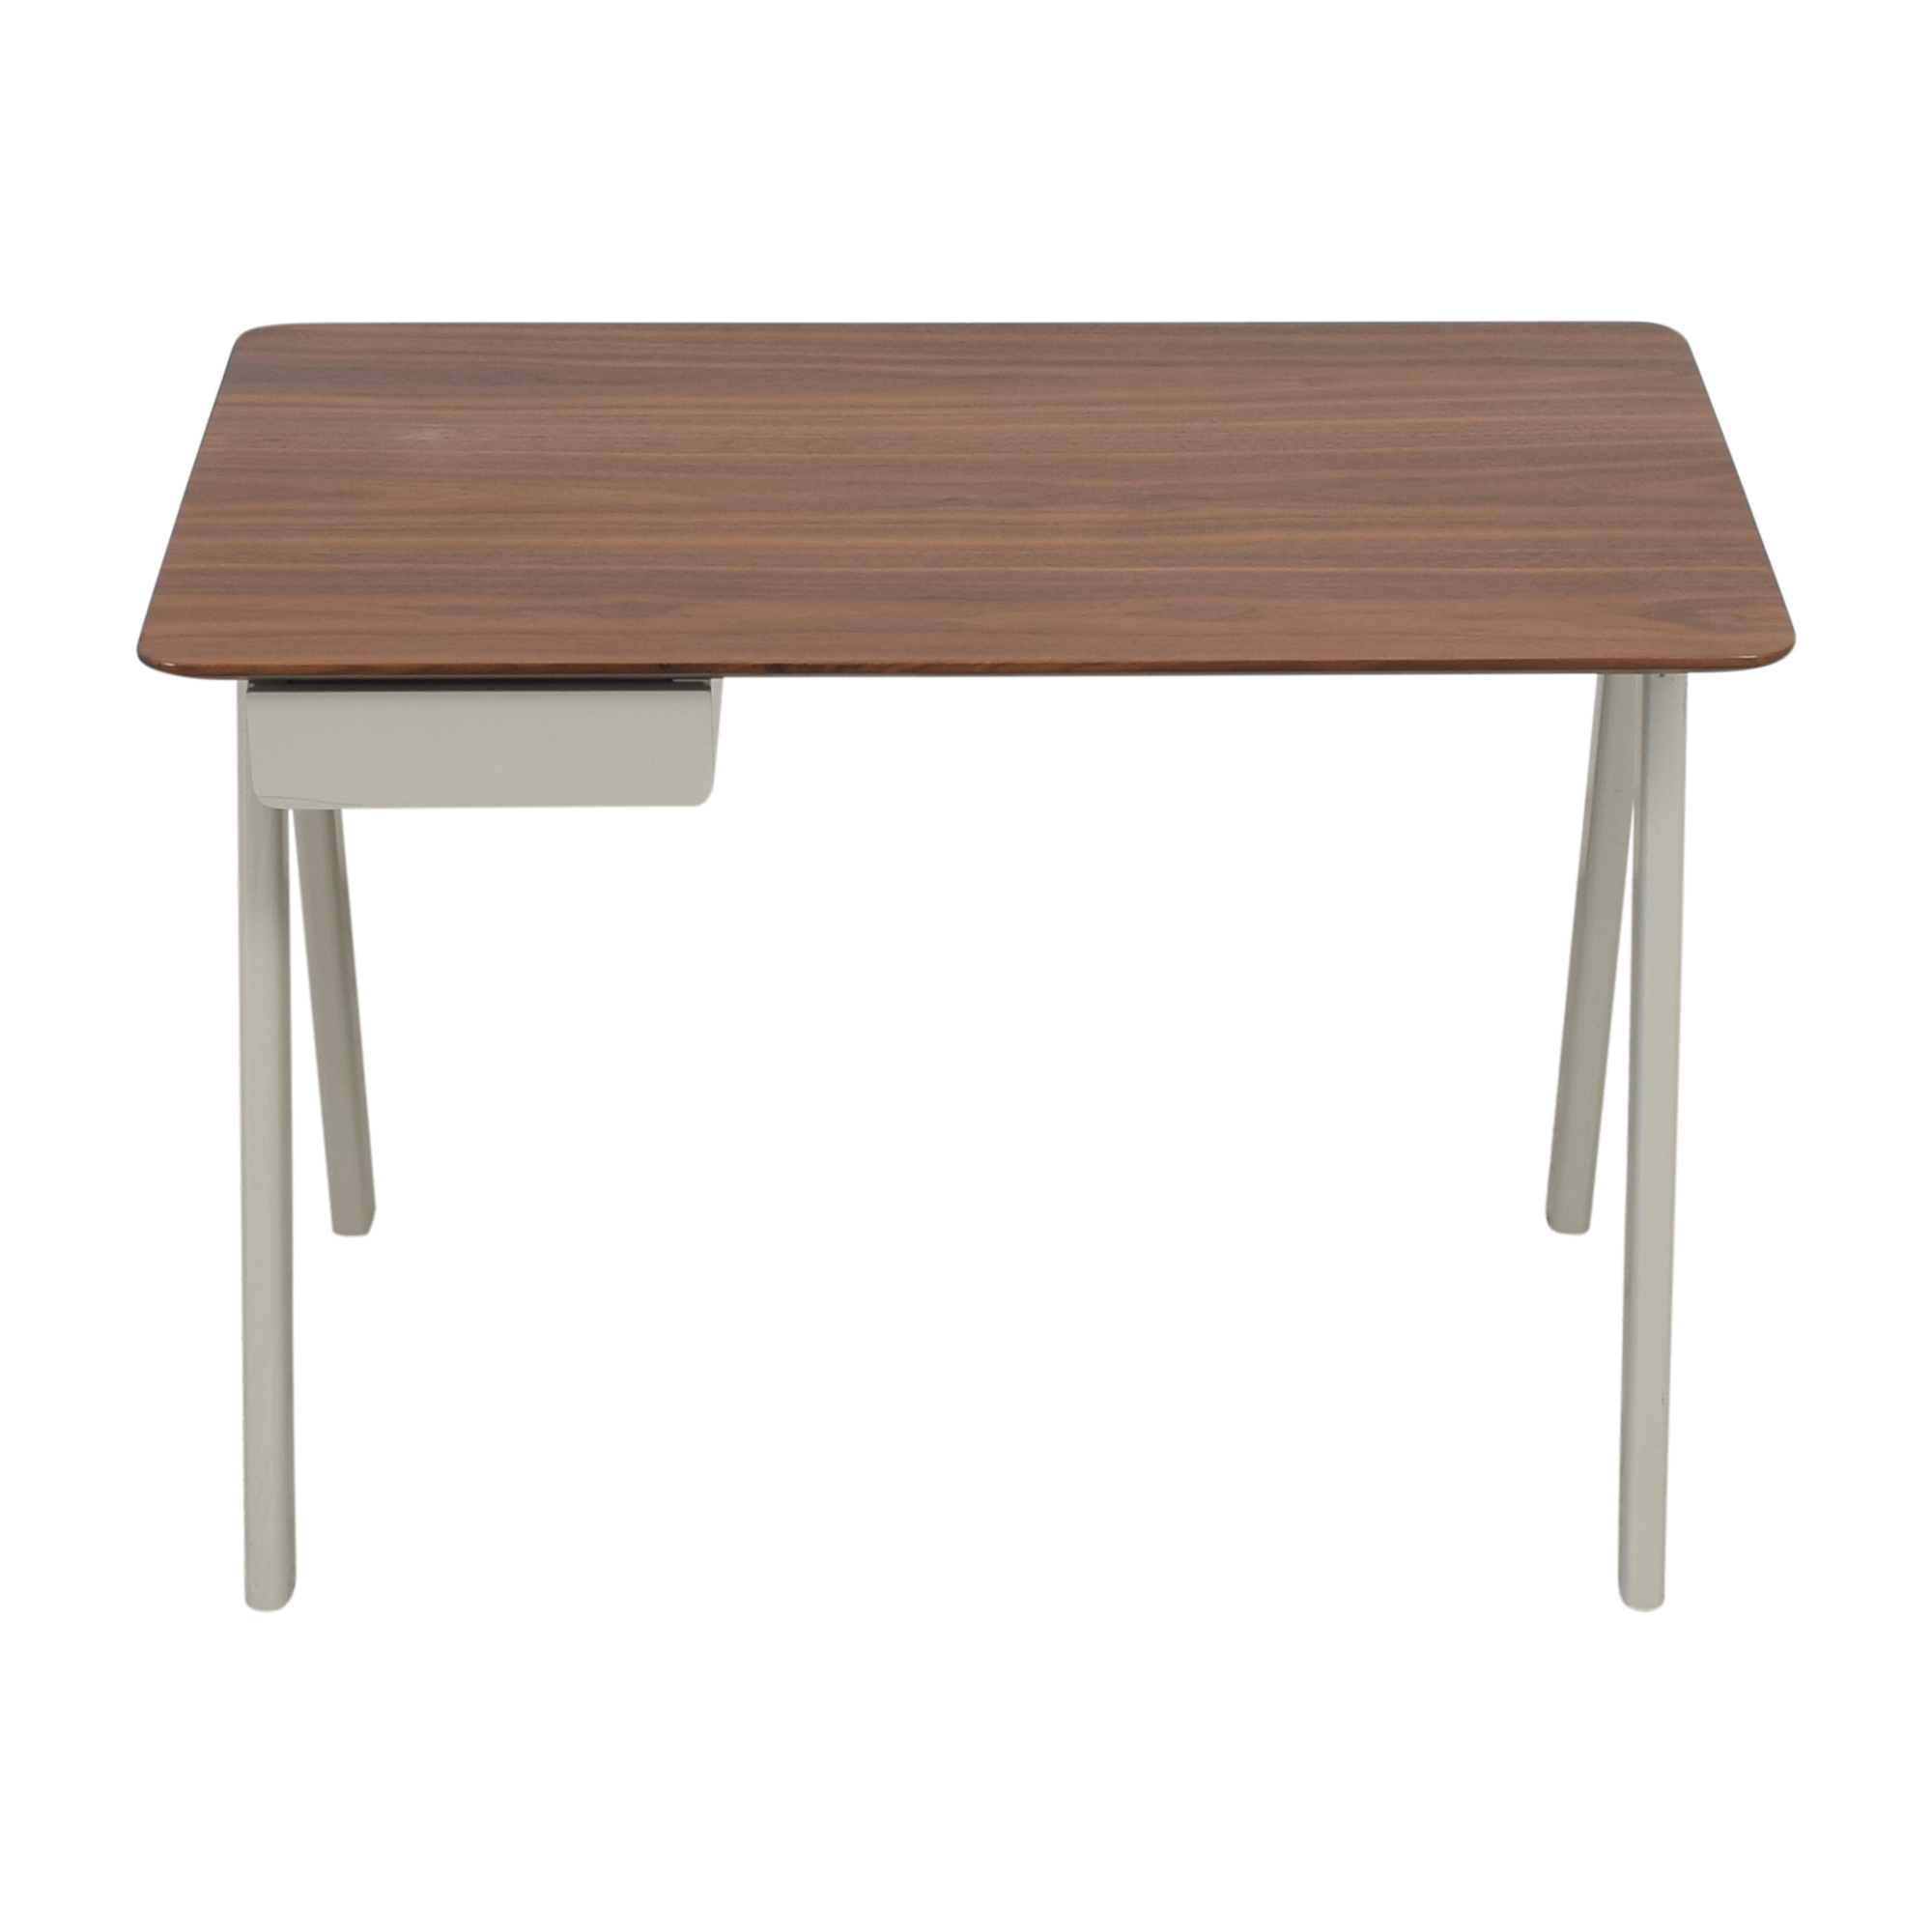 shop Blu Dot Blu Dot Stash Desk online